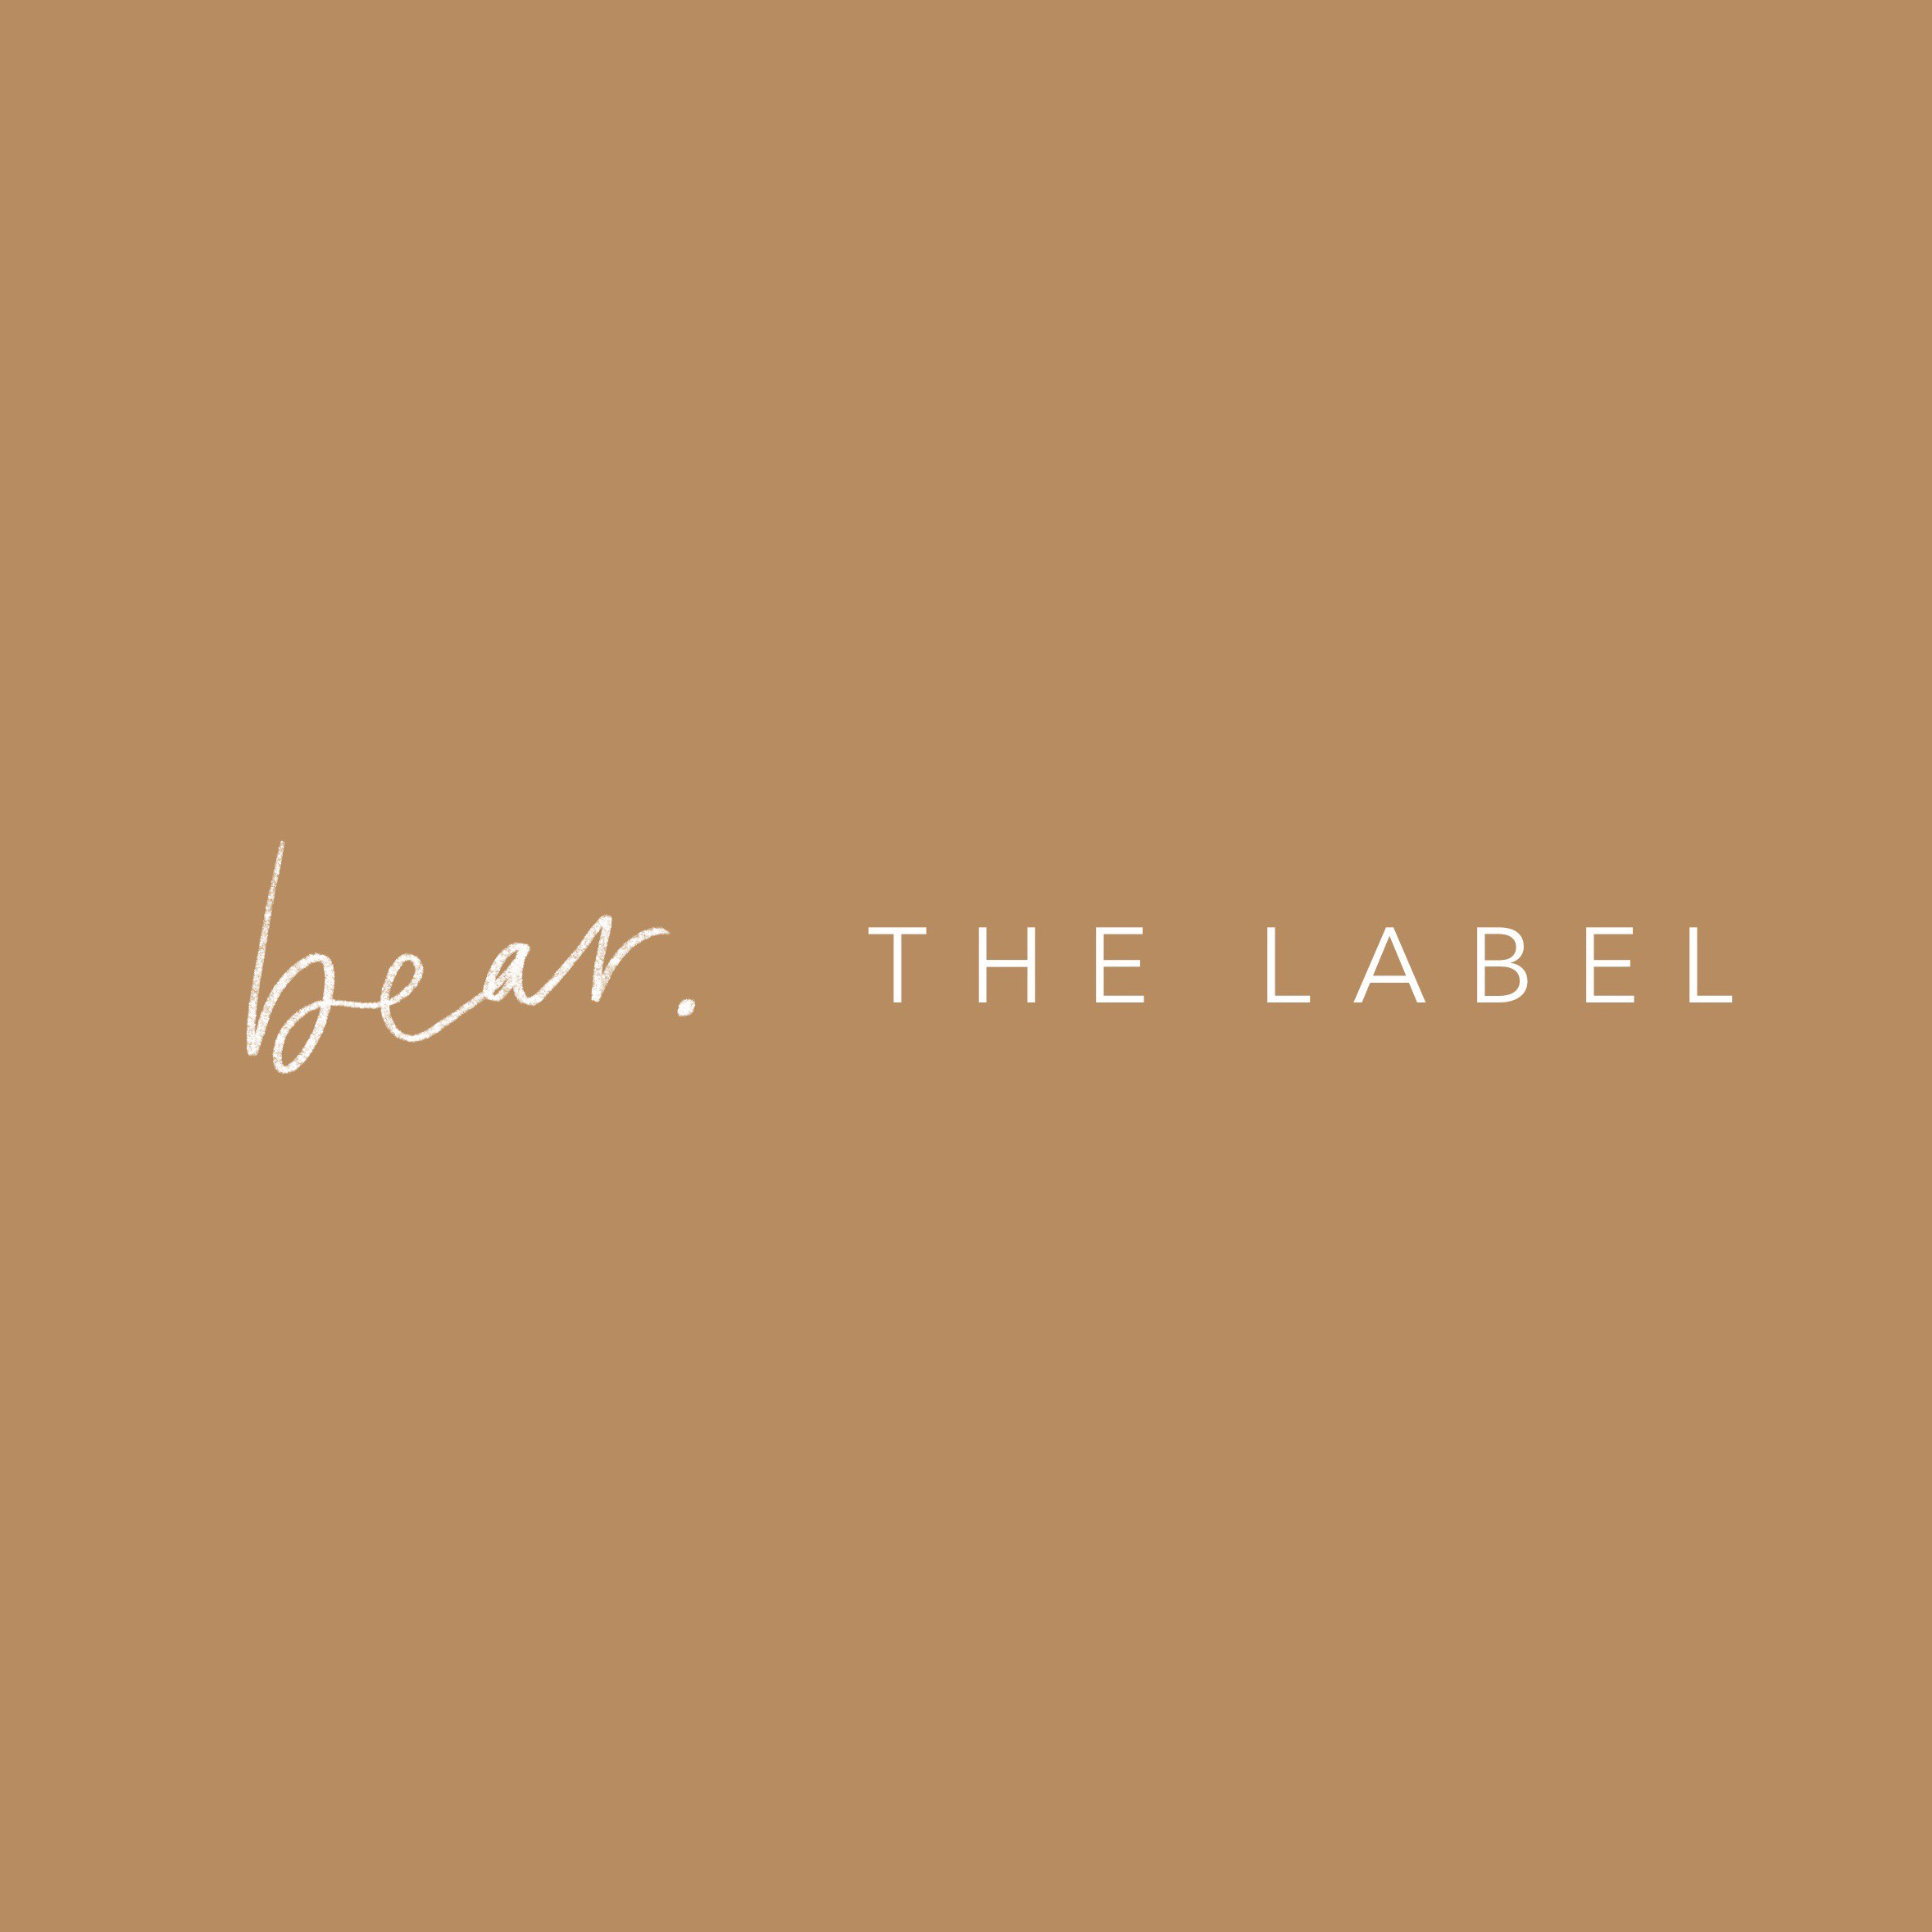 Branding - bear. the label